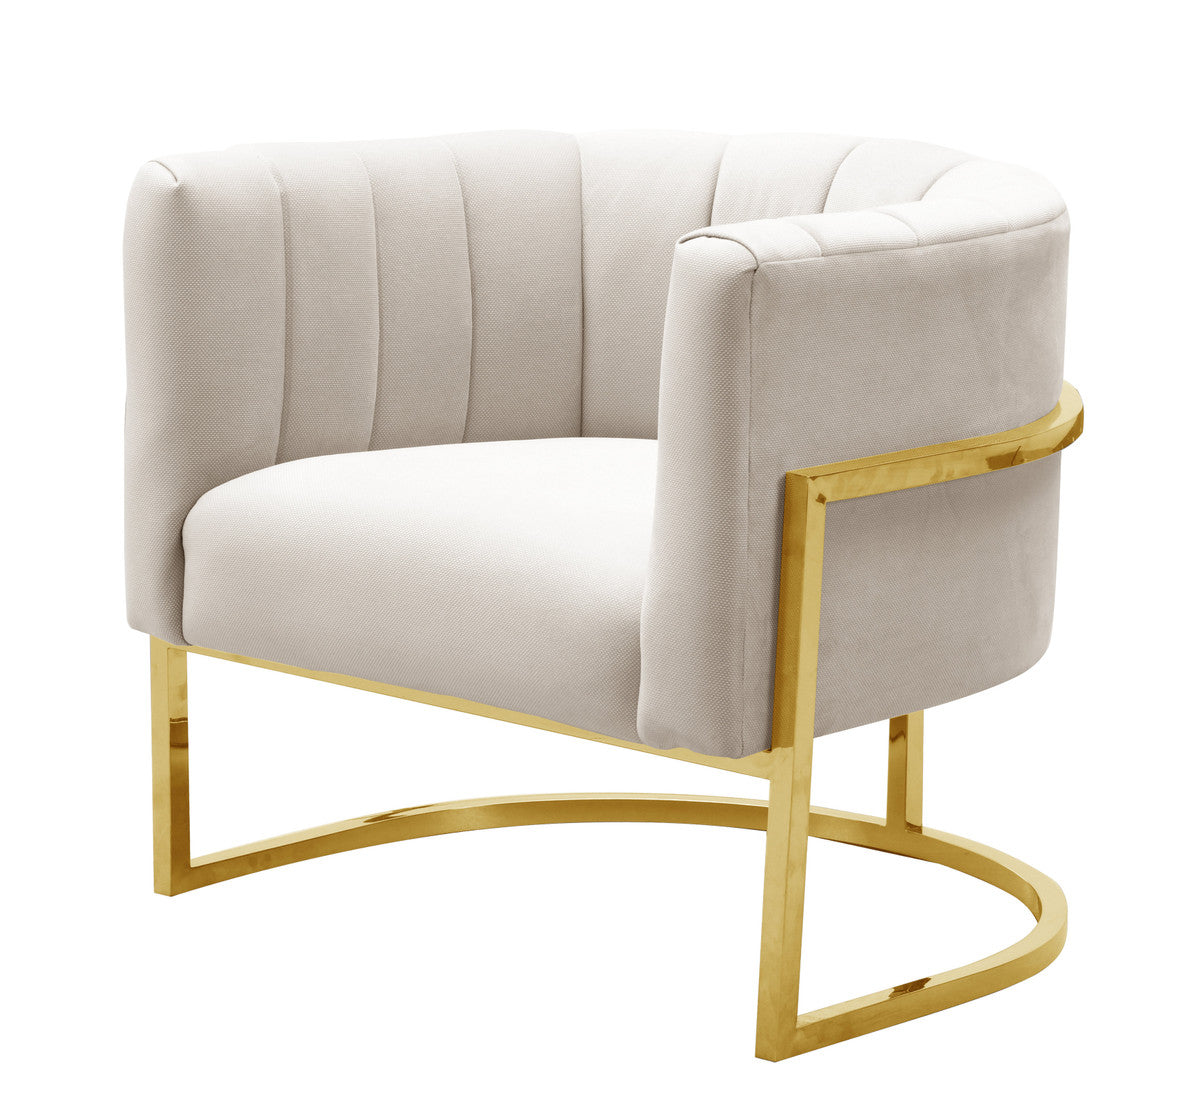 CORAL SPOTTED CREAM CHAIR WHITH GOLD BASE.